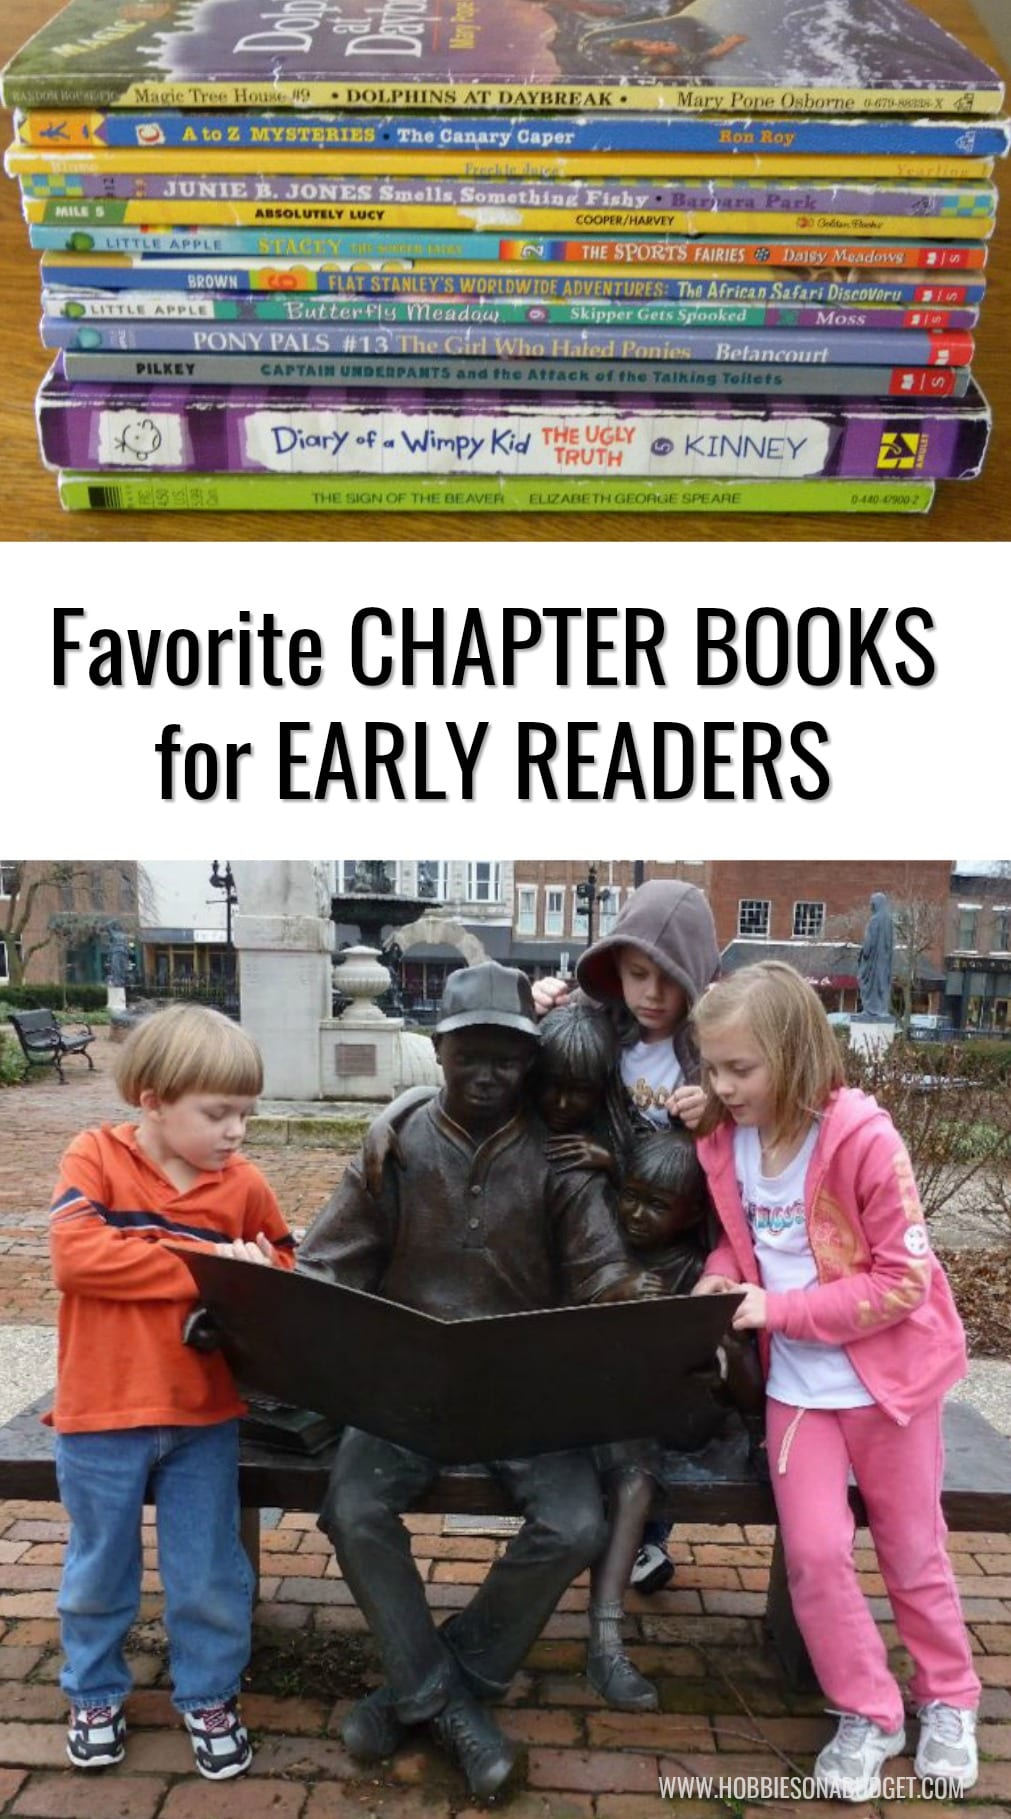 Favorite Chapter Books for Early Readers